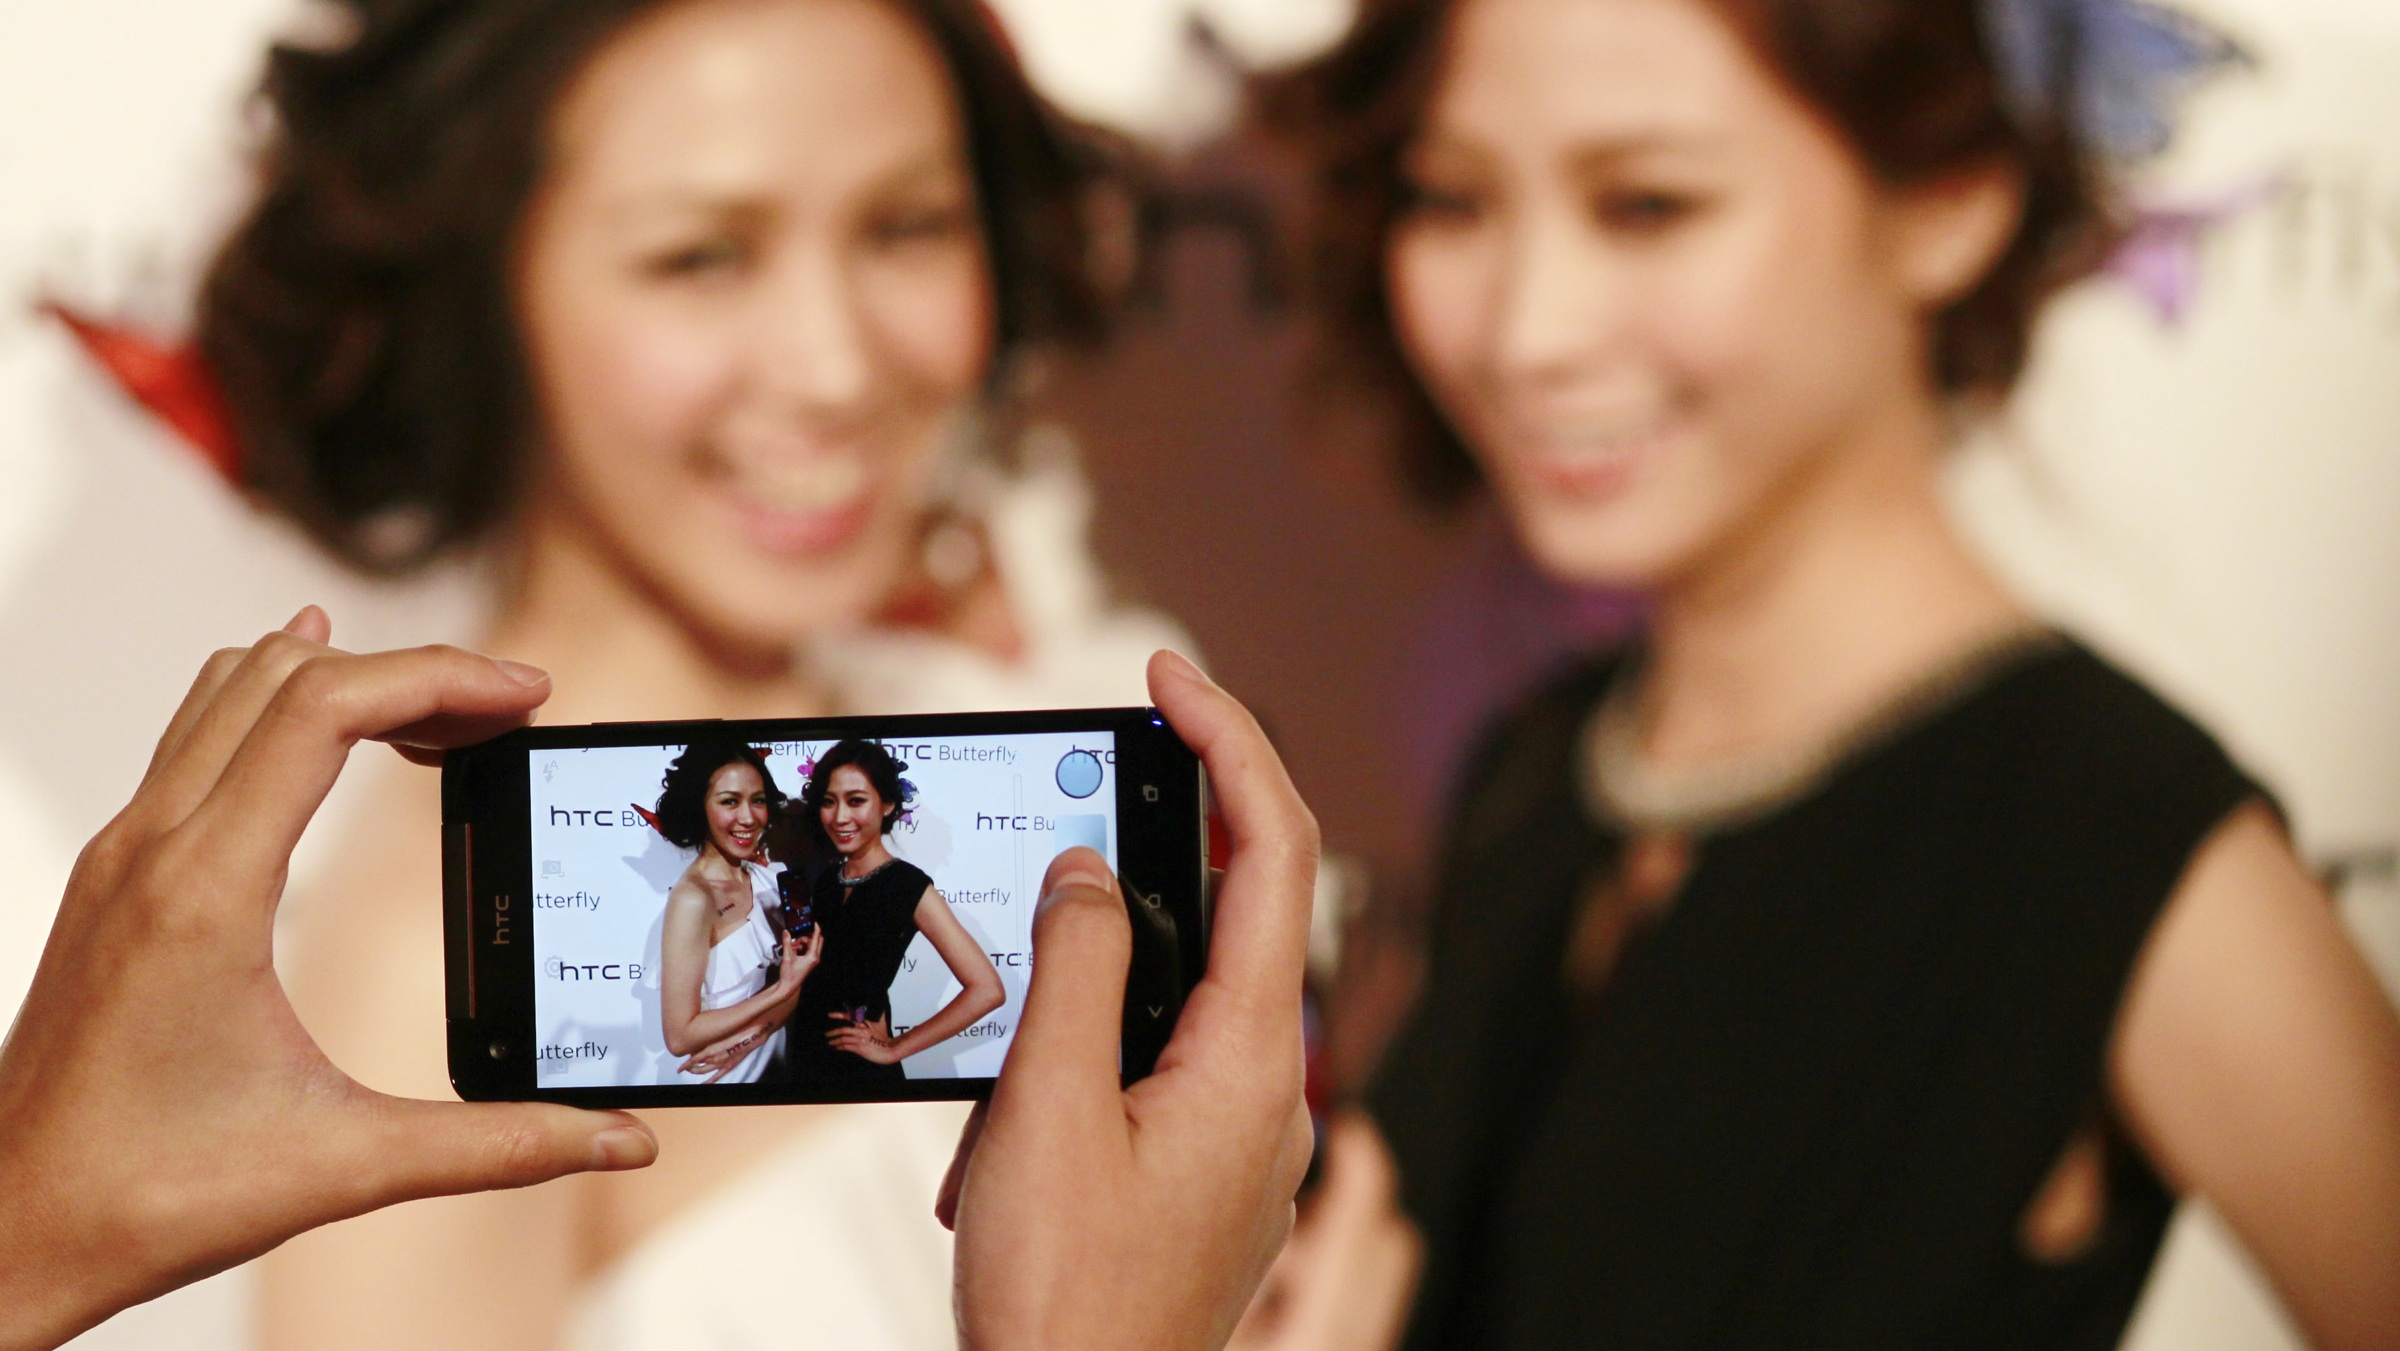 Models take photos with the new HTC J Butterfly smart phone, featuring a 5-inch Super LCD 3 display with 1920x1080 resolution, at a launch party in Taipei, Taiwan, Tuesday, Dec. 11, 2012. (AP Photo/Wally Santana)